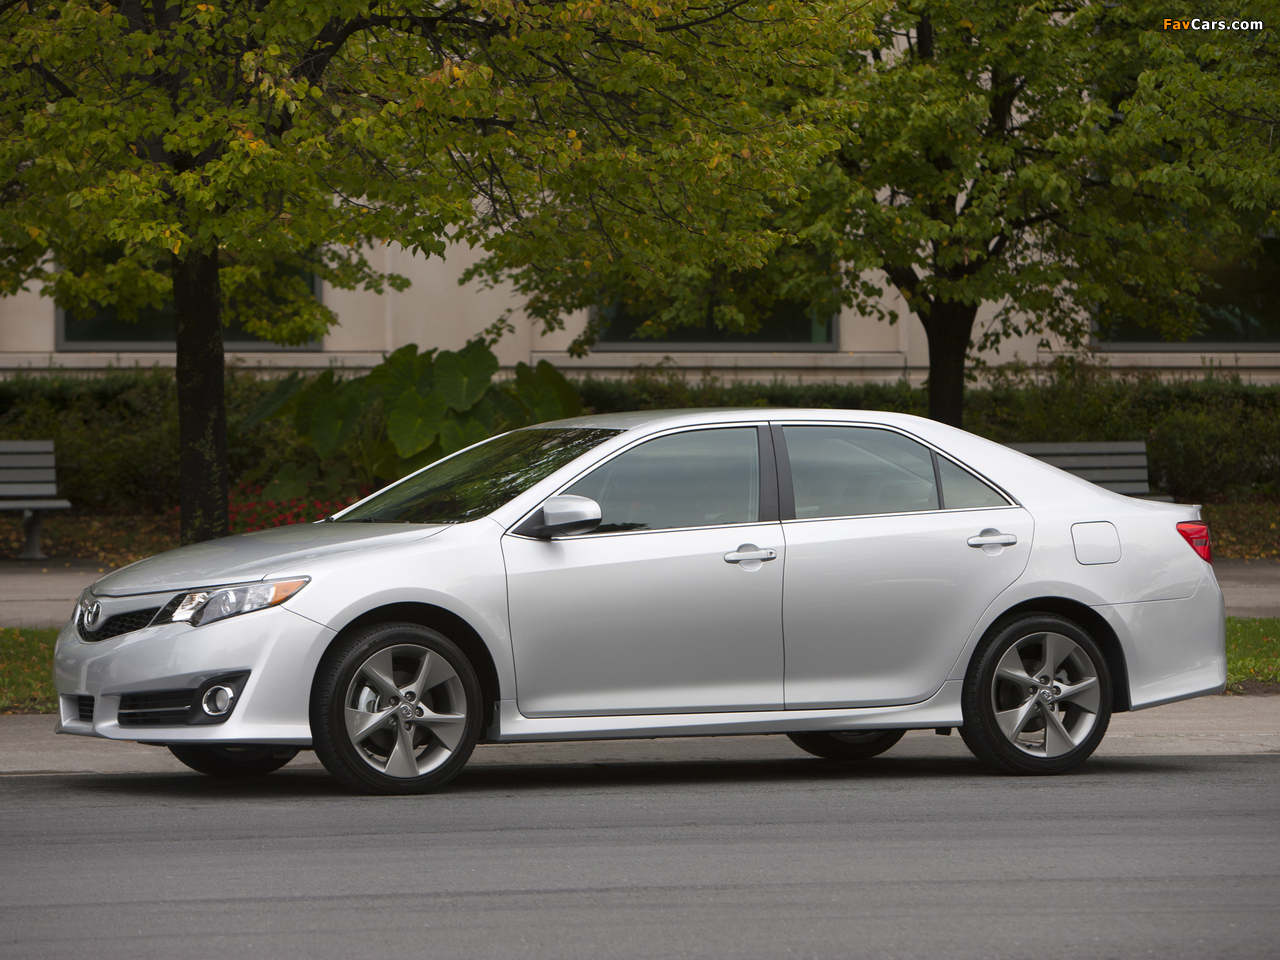 Toyota Camry Features